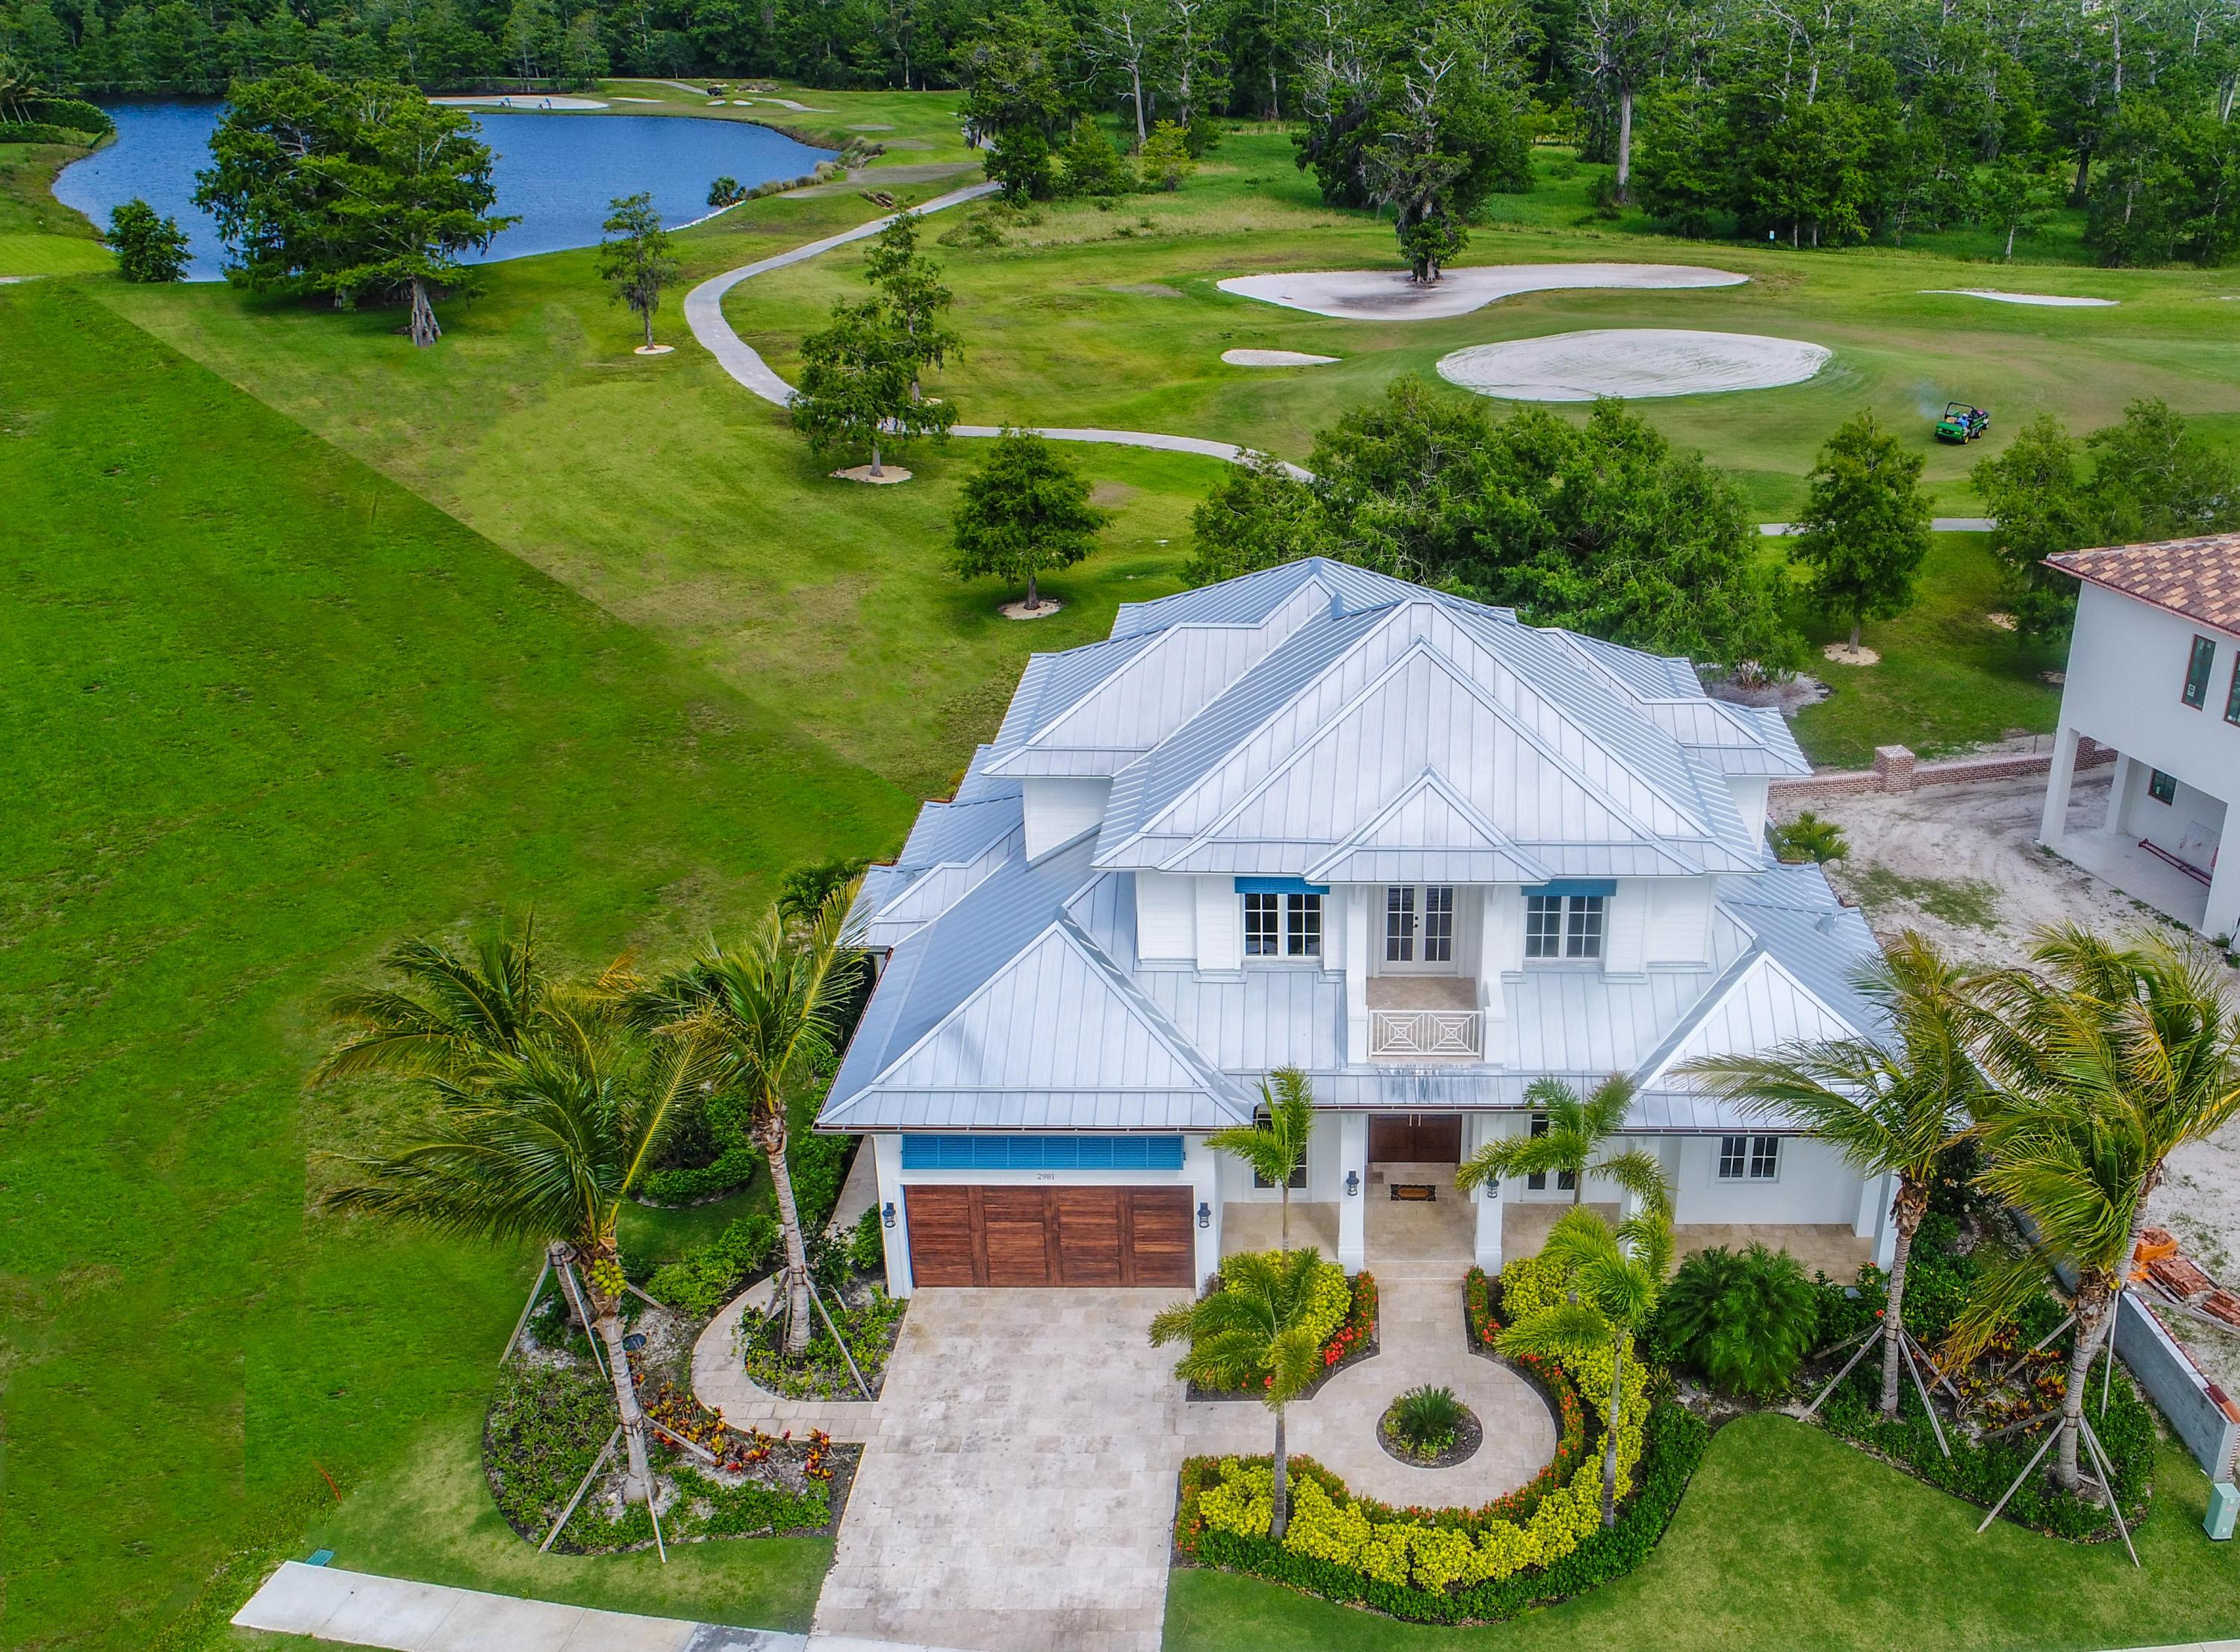 2981 Blue Cypress Lane, Wellington, Florida 33414, 4 Bedrooms Bedrooms, ,4.1 BathroomsBathrooms,Single Family,For Sale,Palm Beach Polo,Blue Cypress,RX-10427880